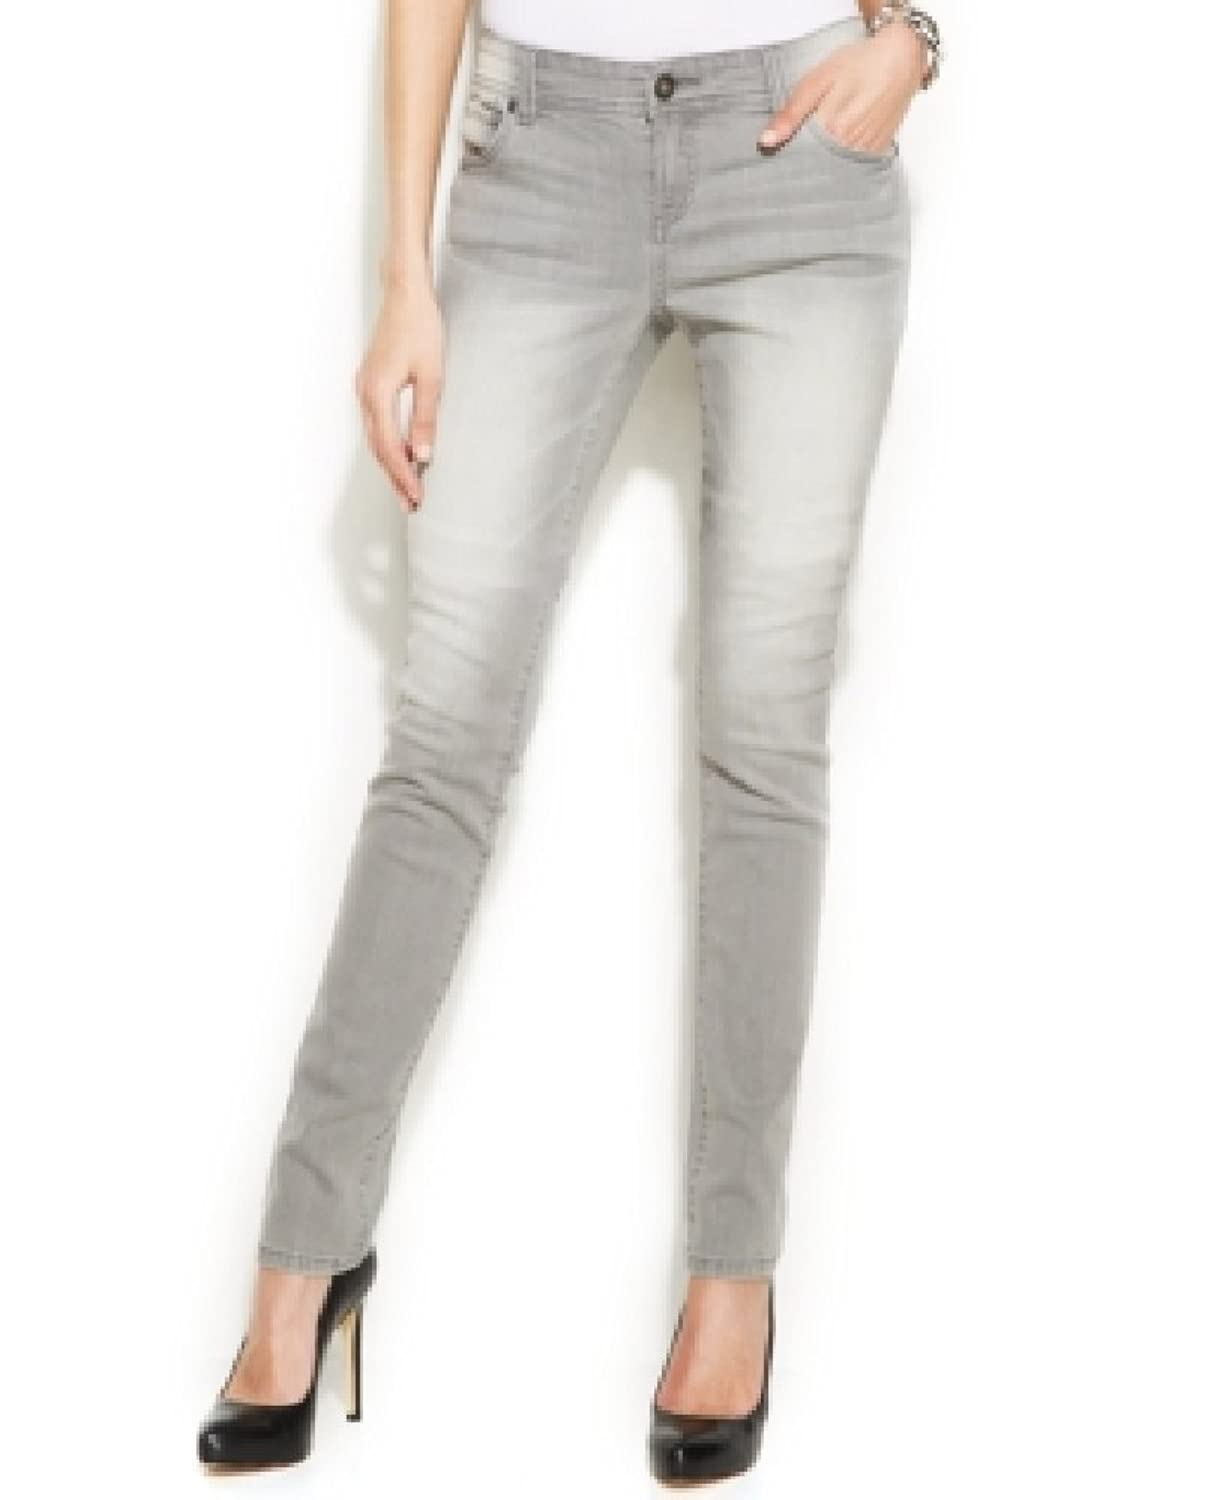 Inc Shadow Grey 5 Pocket Skinny Leg Regular Fit Denim Jeans Womens (10)